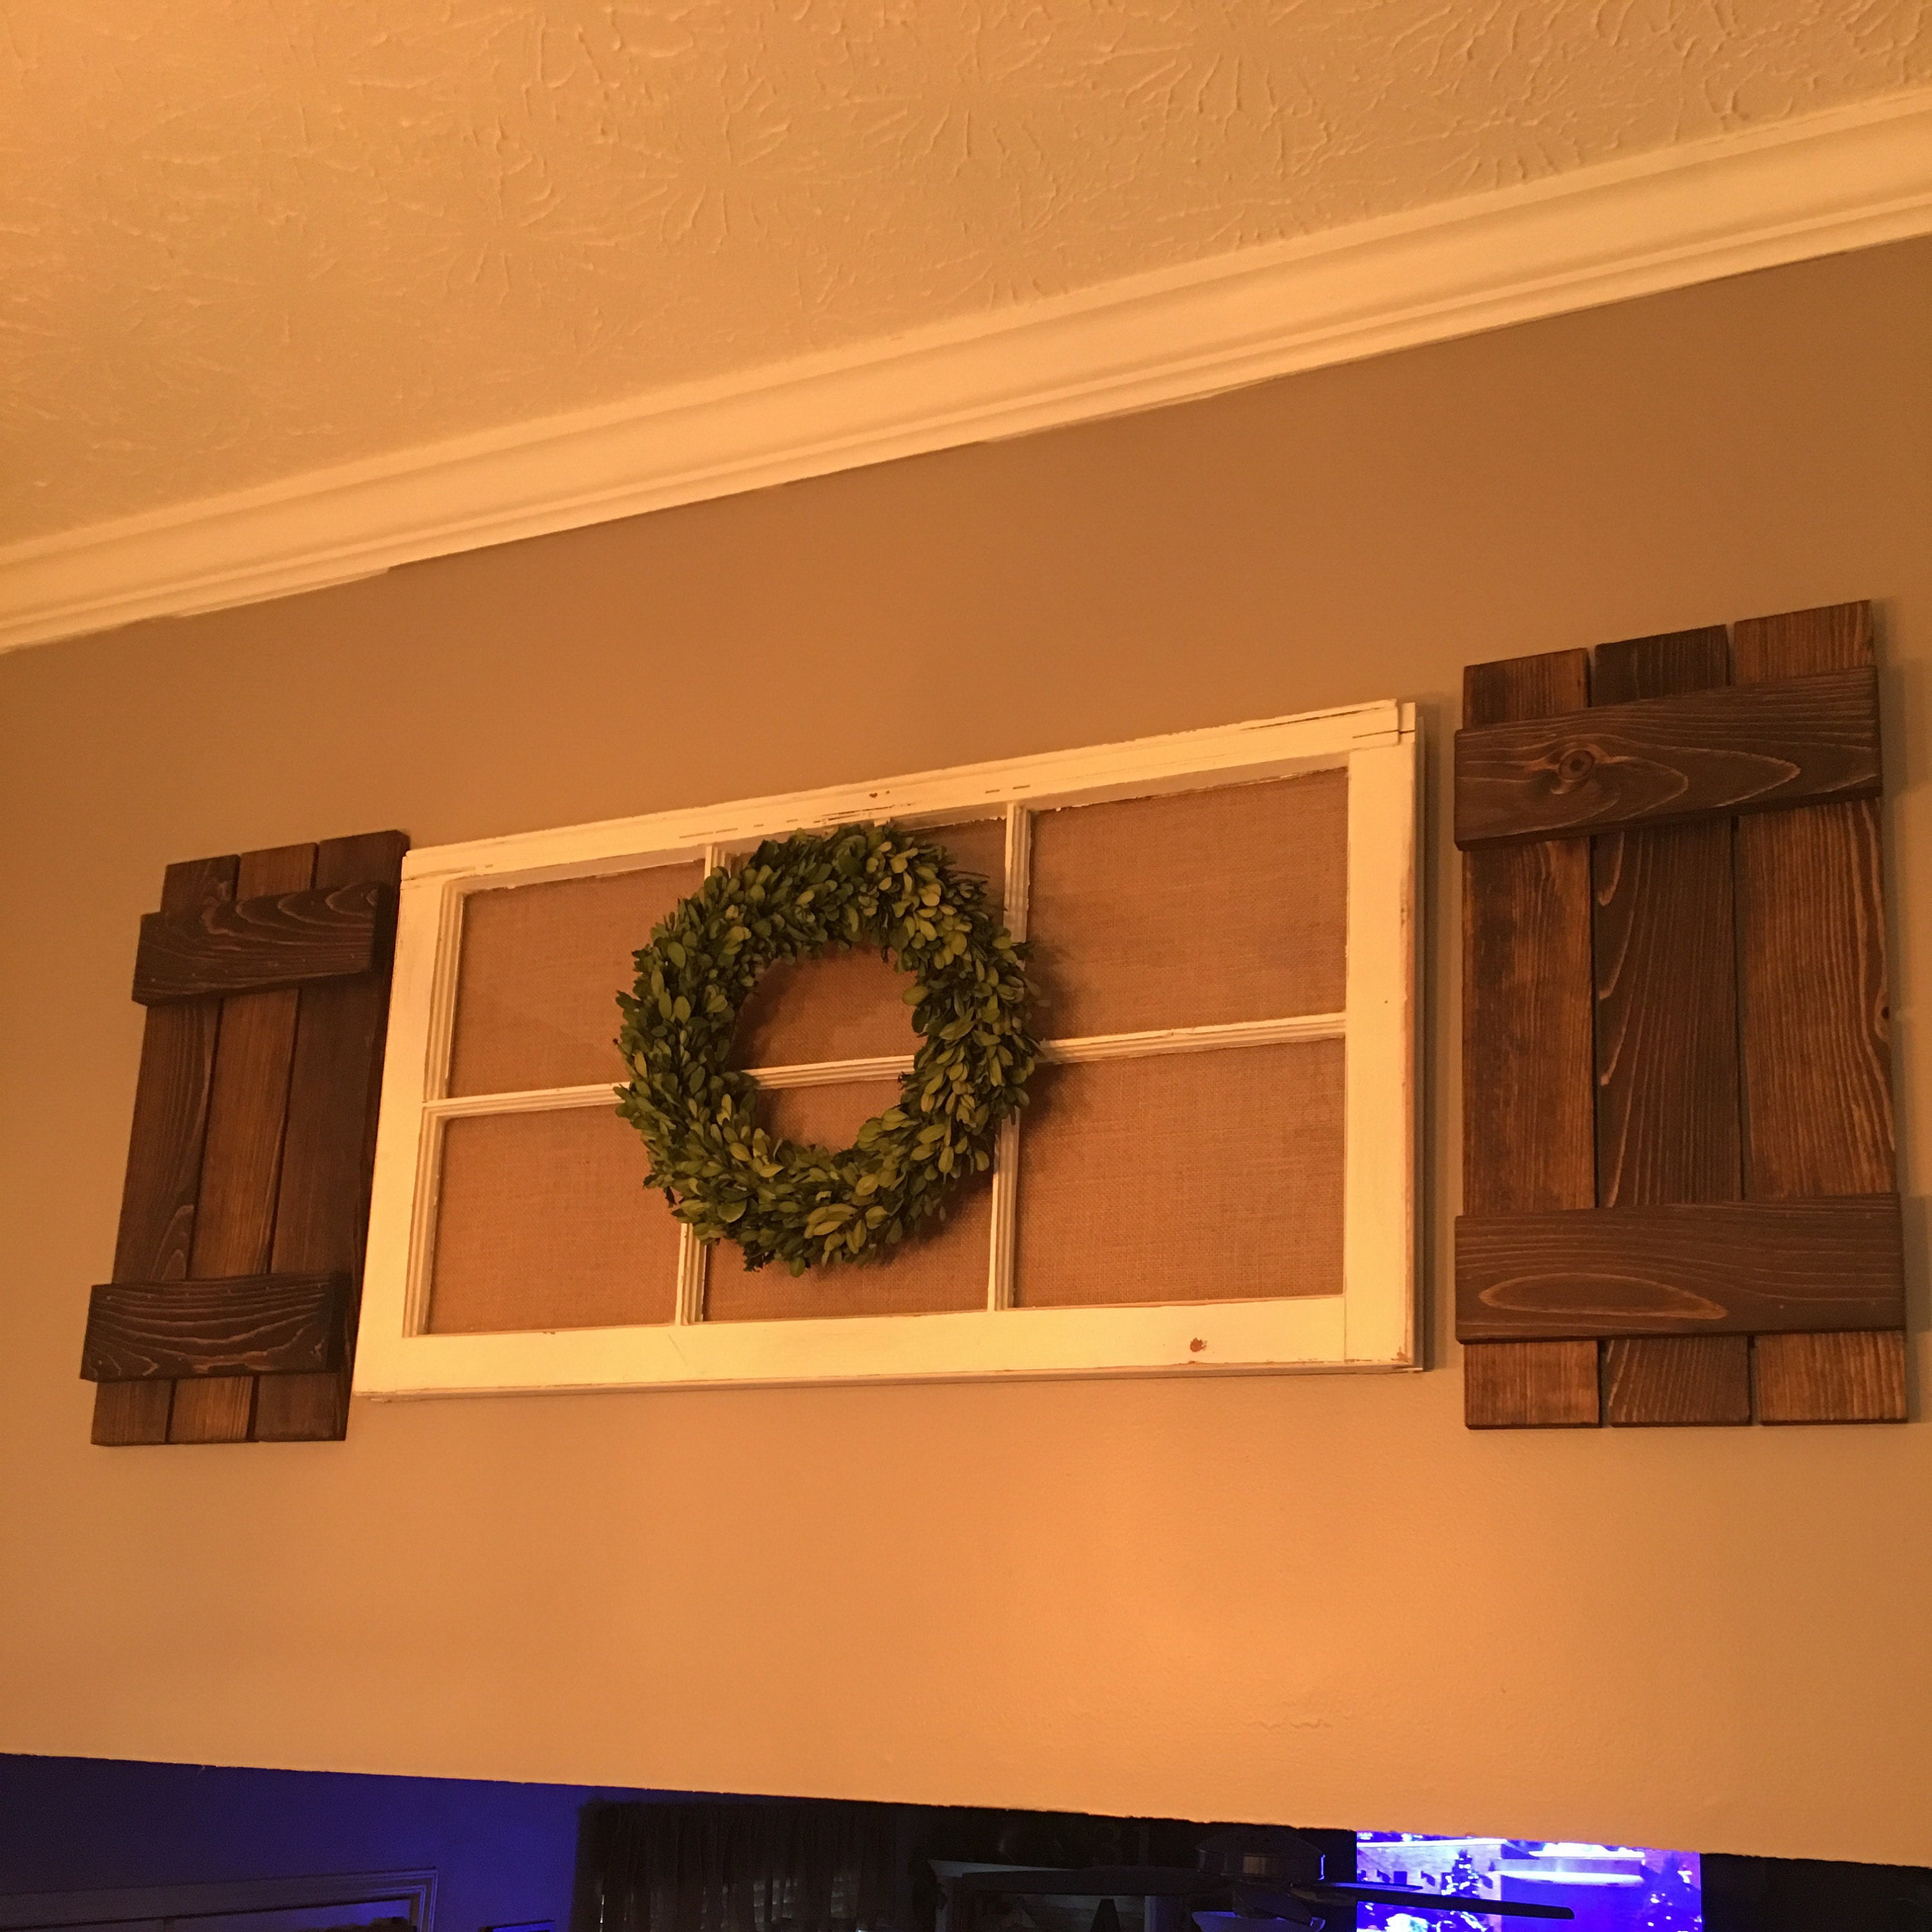 Pair Of Decorative Interior Board N Batten Style Shutters 20 Colors Classic Gray Available In 4 Sizes 40 34 28 22 Rustic Decor